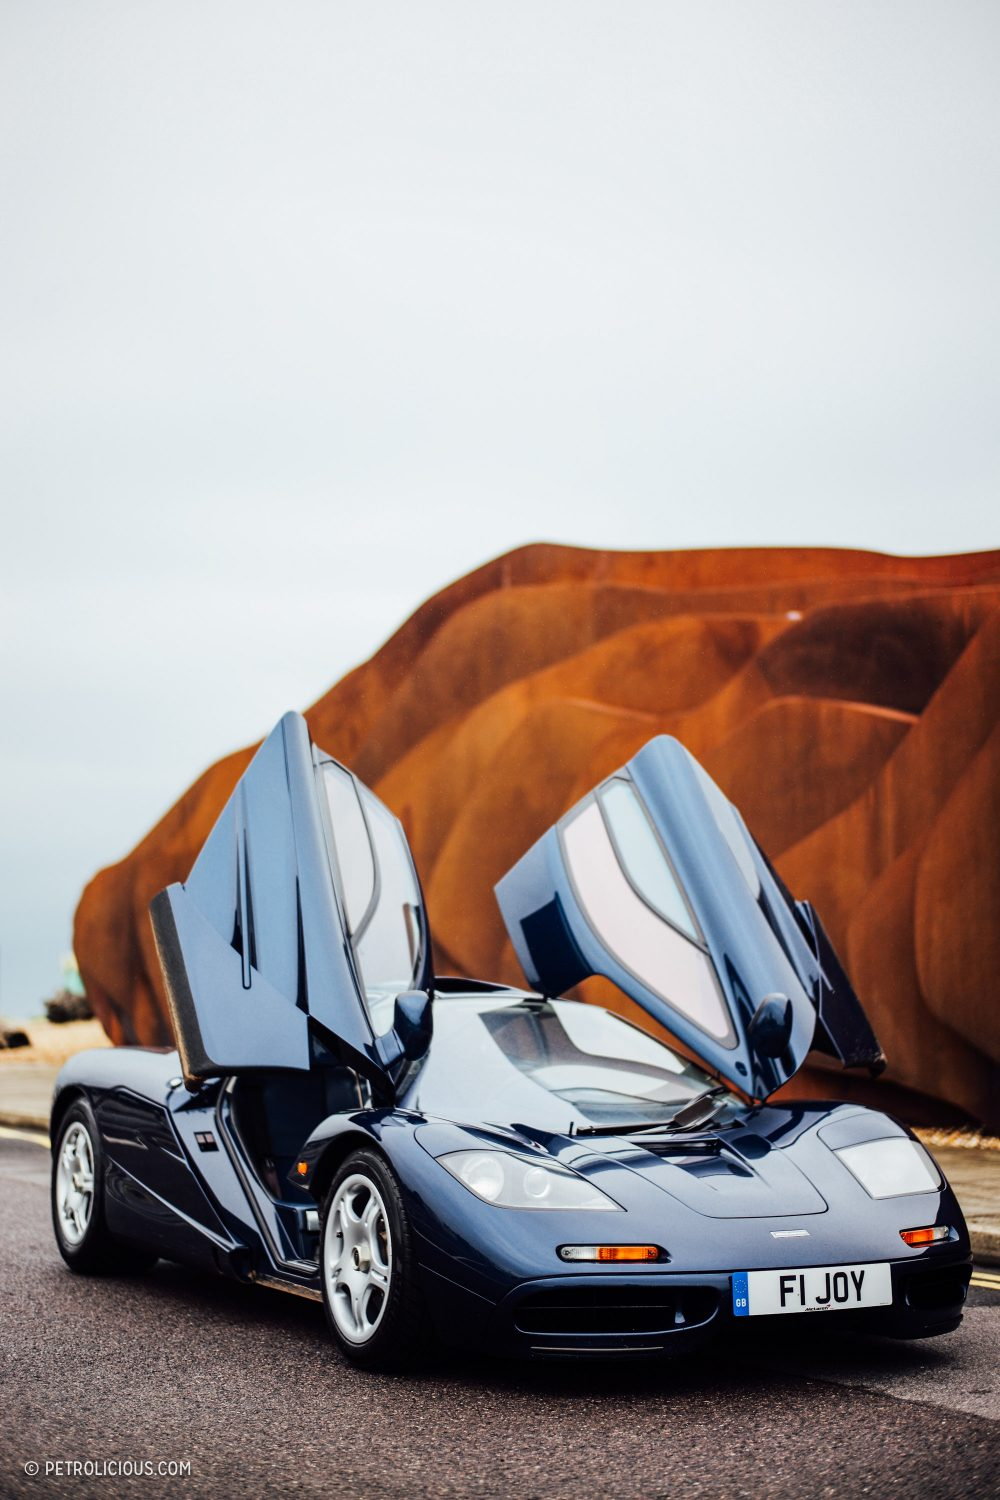 this is what it's really like to own a mclaren f1 • petrolicious